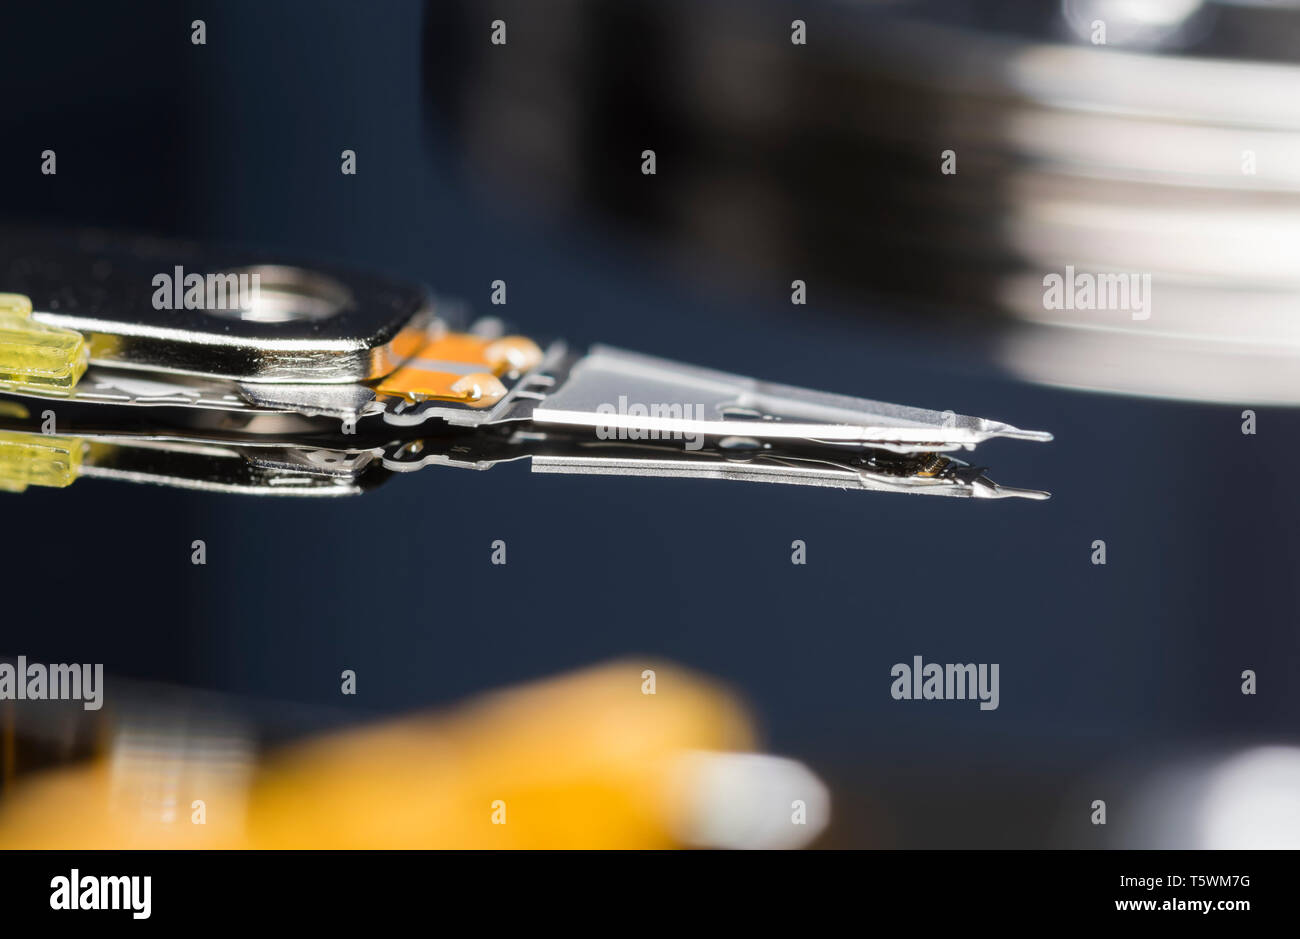 Macro closeup image of the actuator arm and read / write head reading and writing data from and to a computer hard disk drive (HDD) platter. - Stock Image